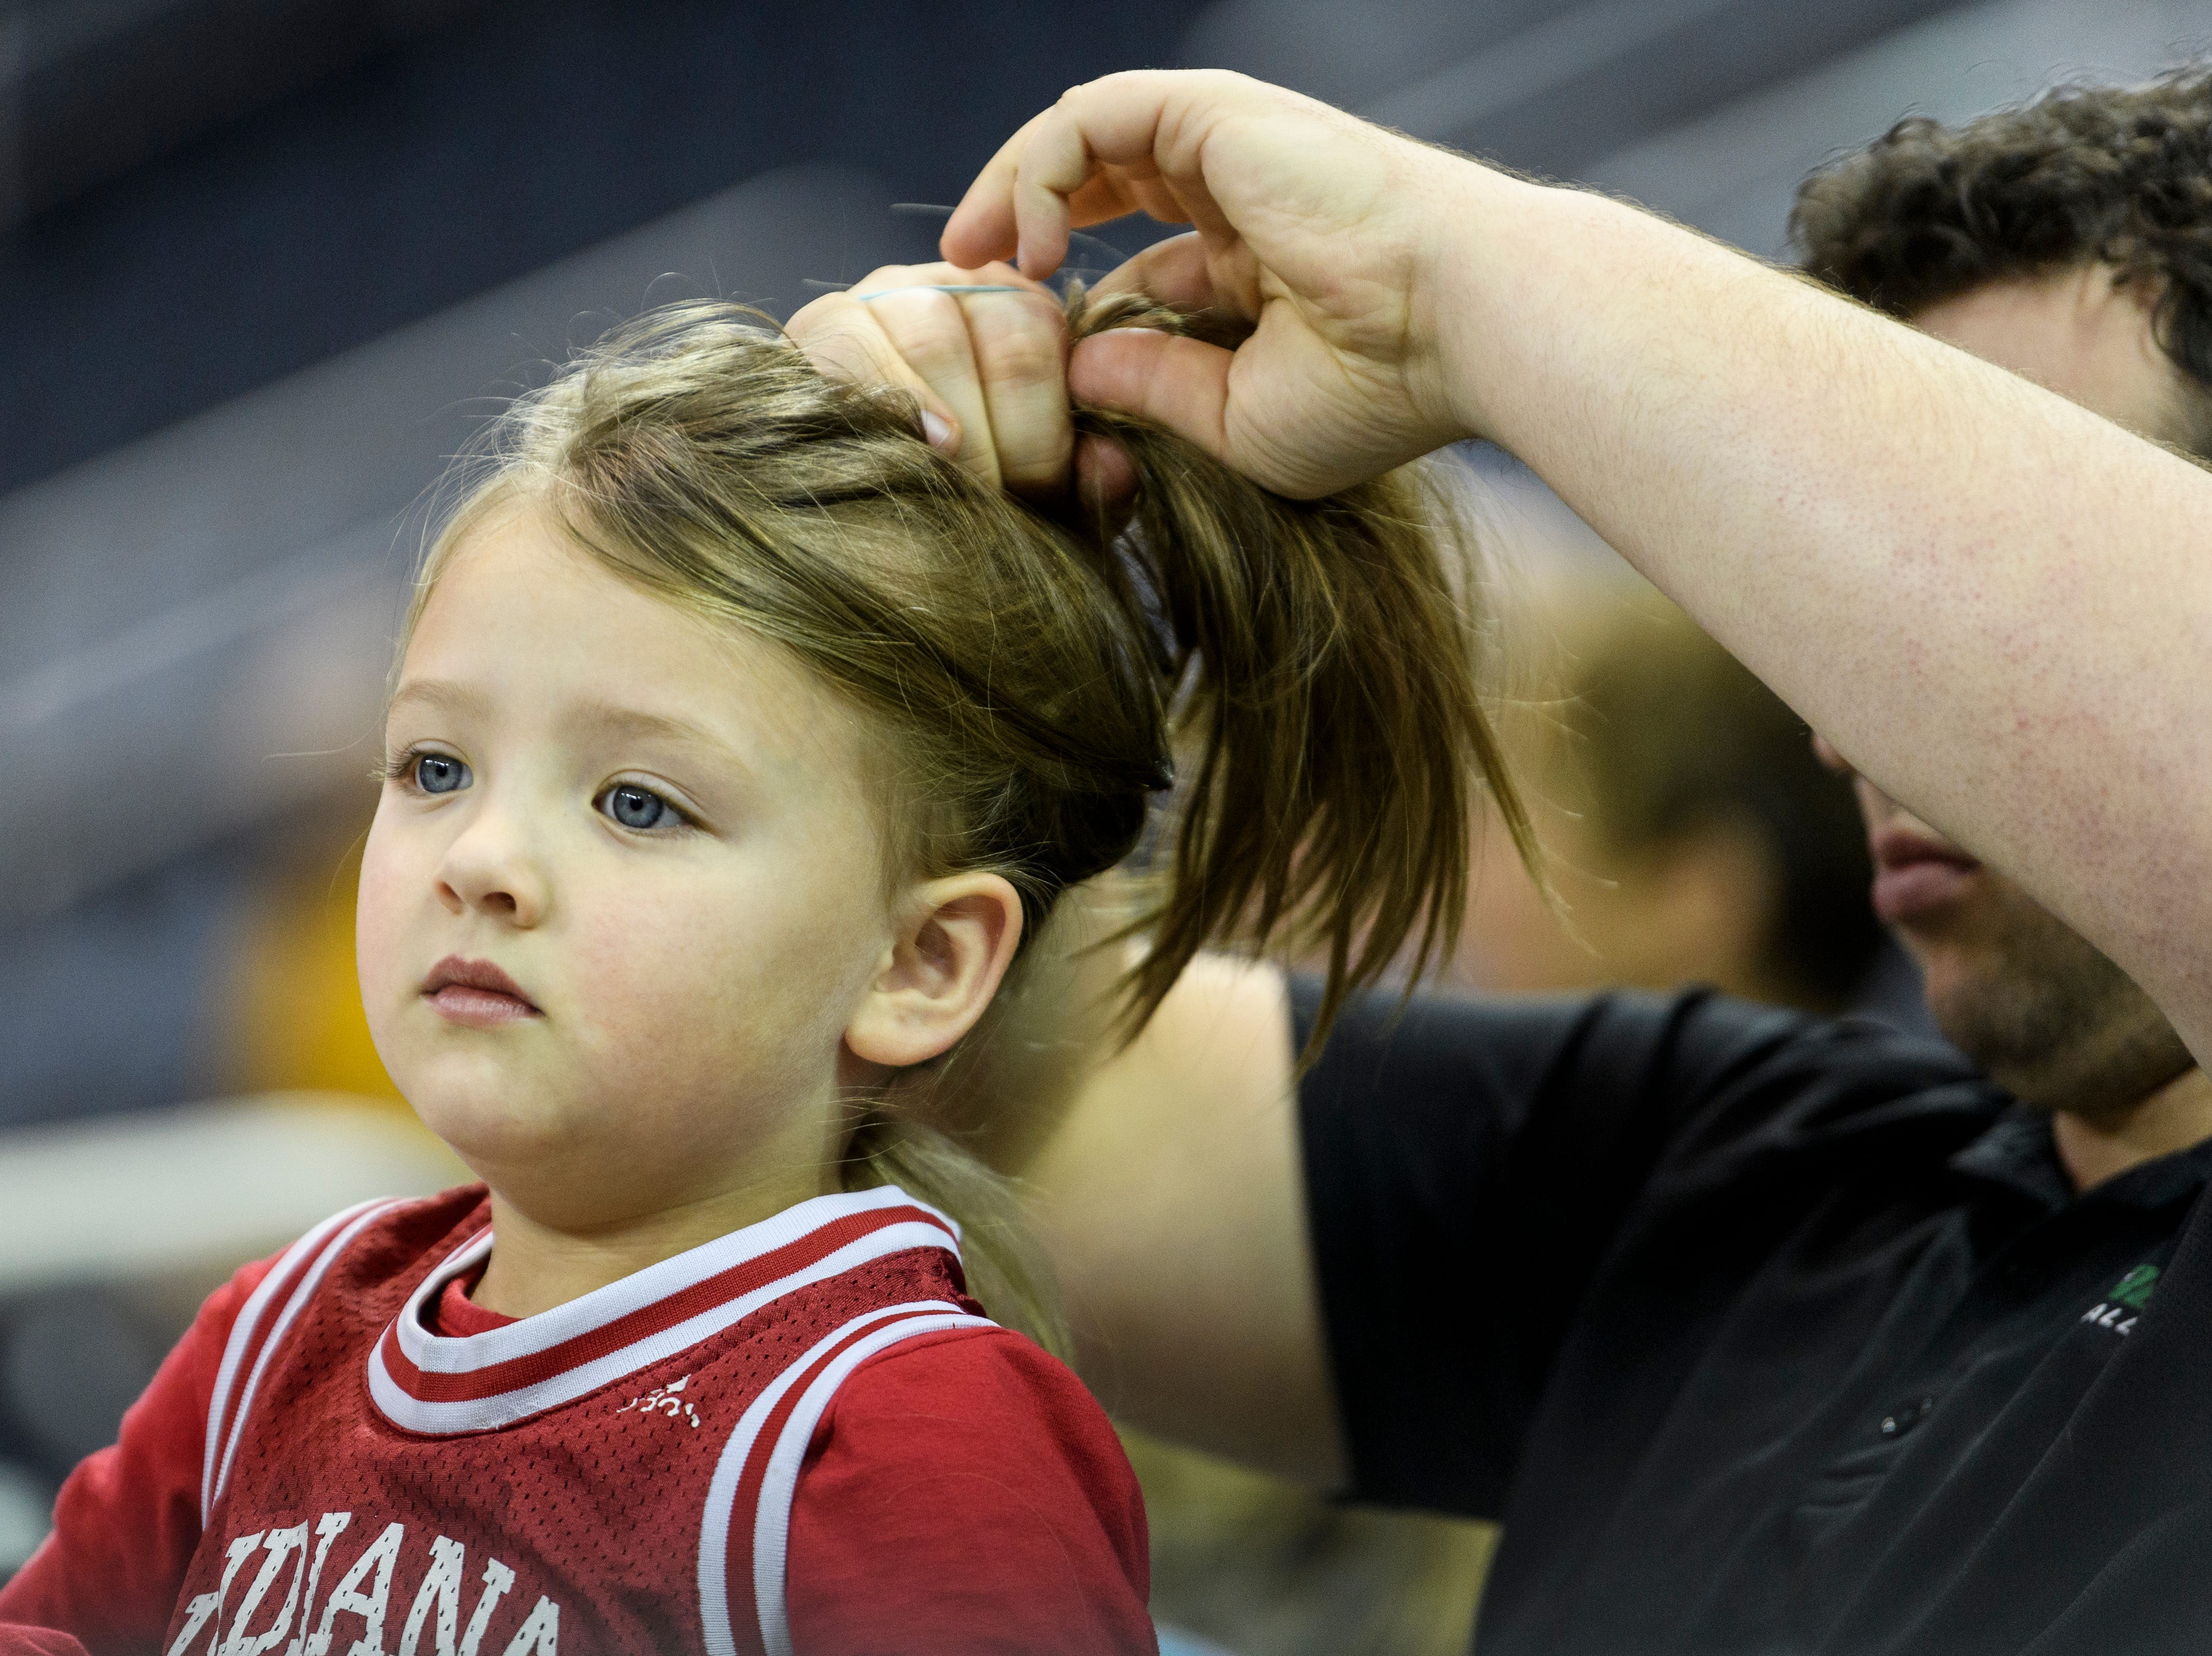 Johnathan Henton of Albion, Ind., helps his daughter Charley Henton, 5, put her hair in a bun as they watch the Ohio Valley Conference men's and women's basketball tournament at Ford Center in Evansville, Ind., Thursday, March 7, 2019. Charley and her older sister Adyson, 7, not pictured, like to play and watch basketball.